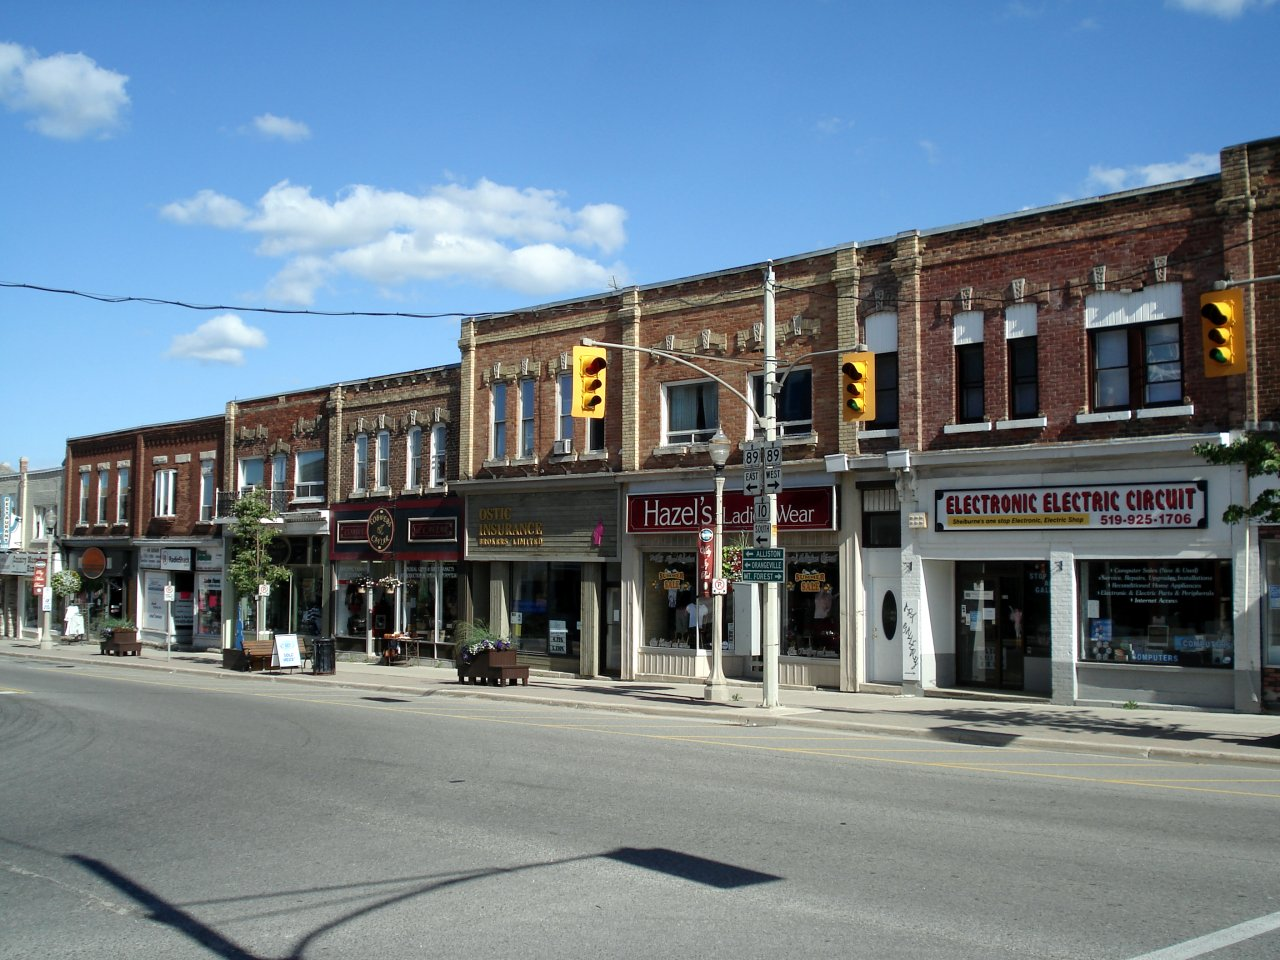 Shelburne's Town Centre, at the intersection of Highway 89 and Highway 10